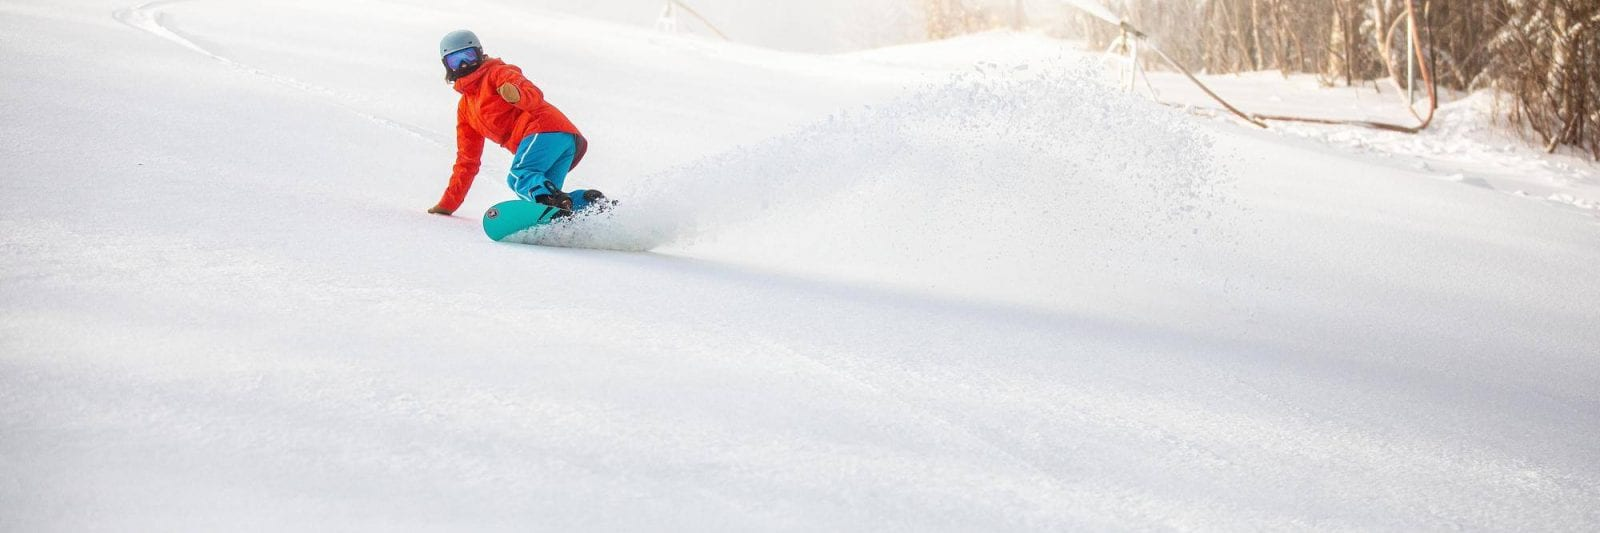 Image of a snowboarder in orange hitting the slopes at Killington Resort in Vermont